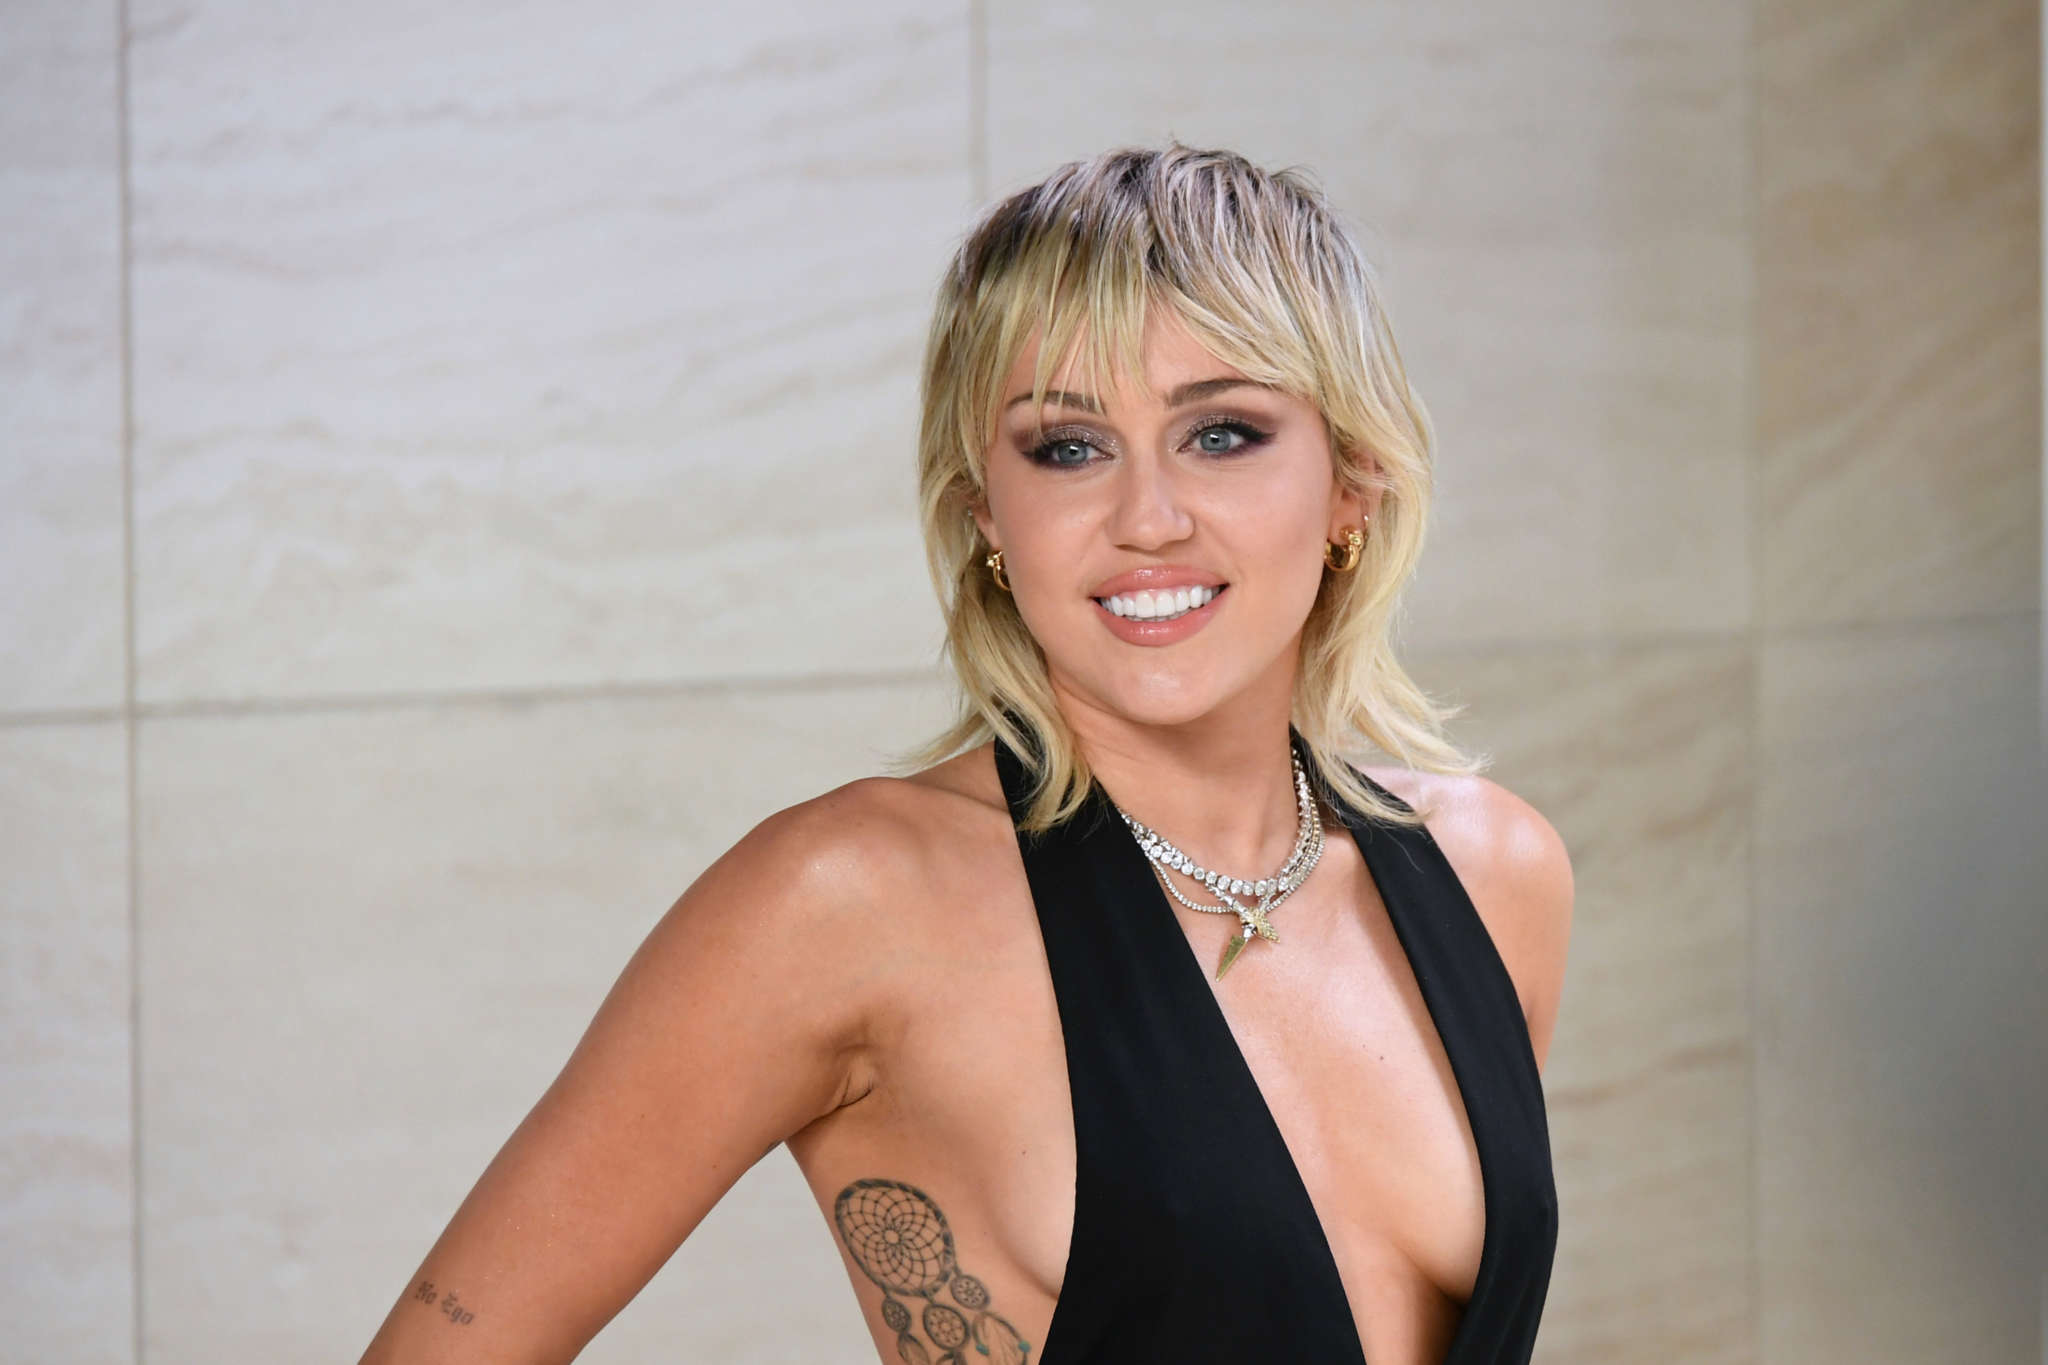 Miley Cyrus Had No Idea How Many Tattoos She Has And Was Shocked To Learn The High Number!